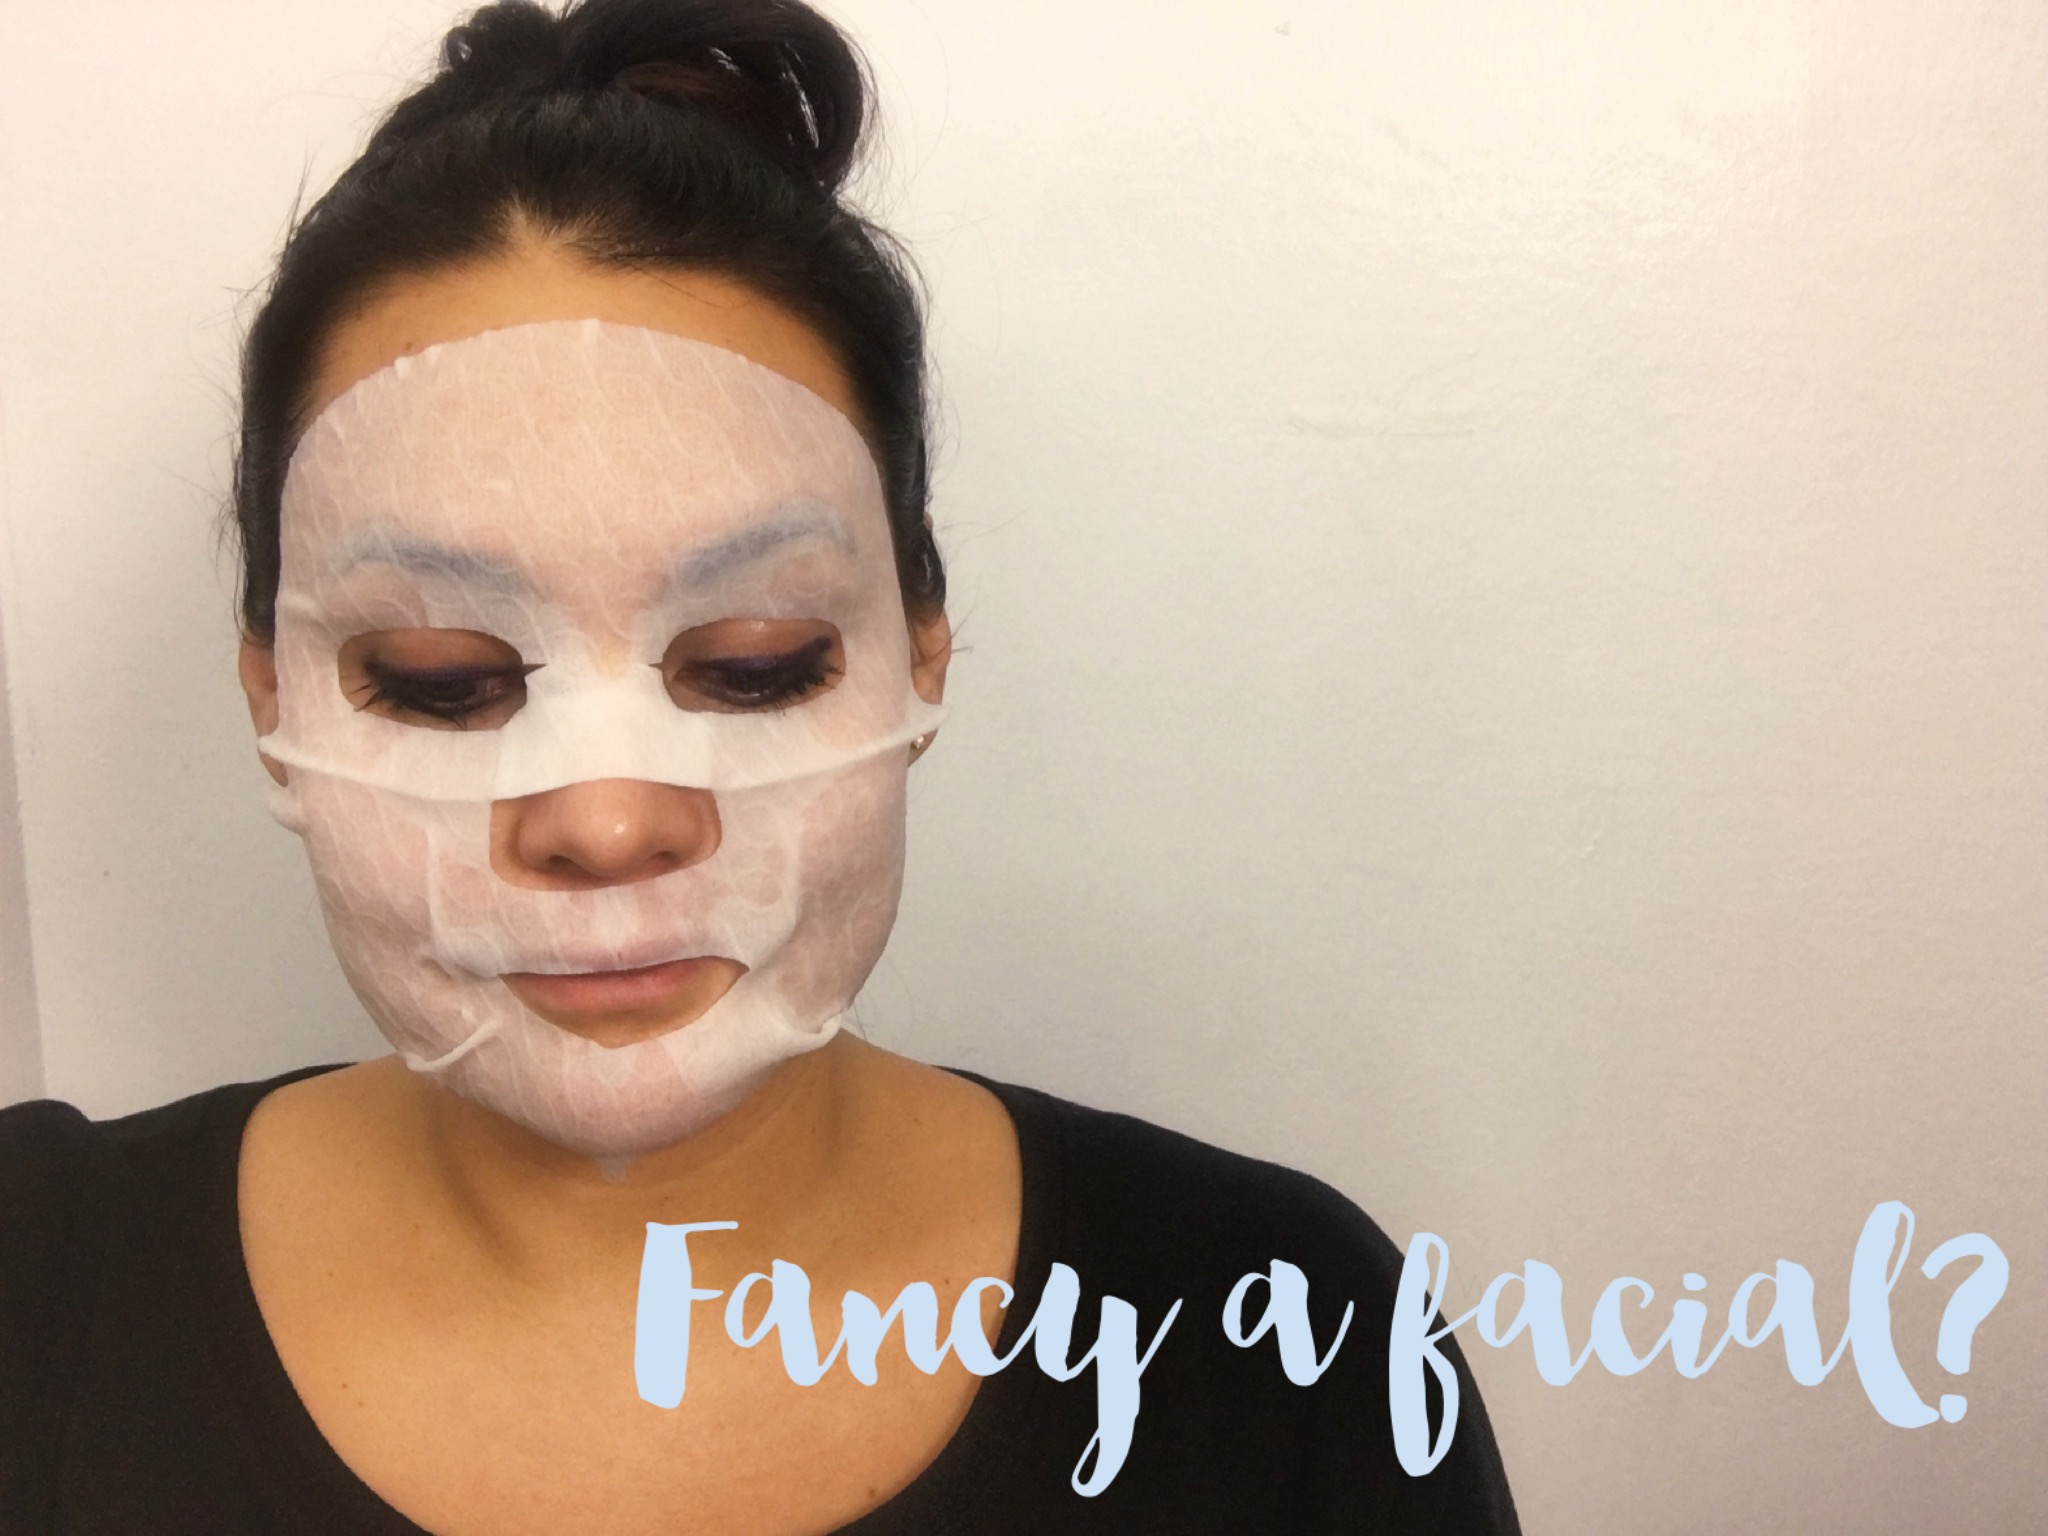 Wearing Skinfood's Everyday Broccoli Facial Mask Sheet